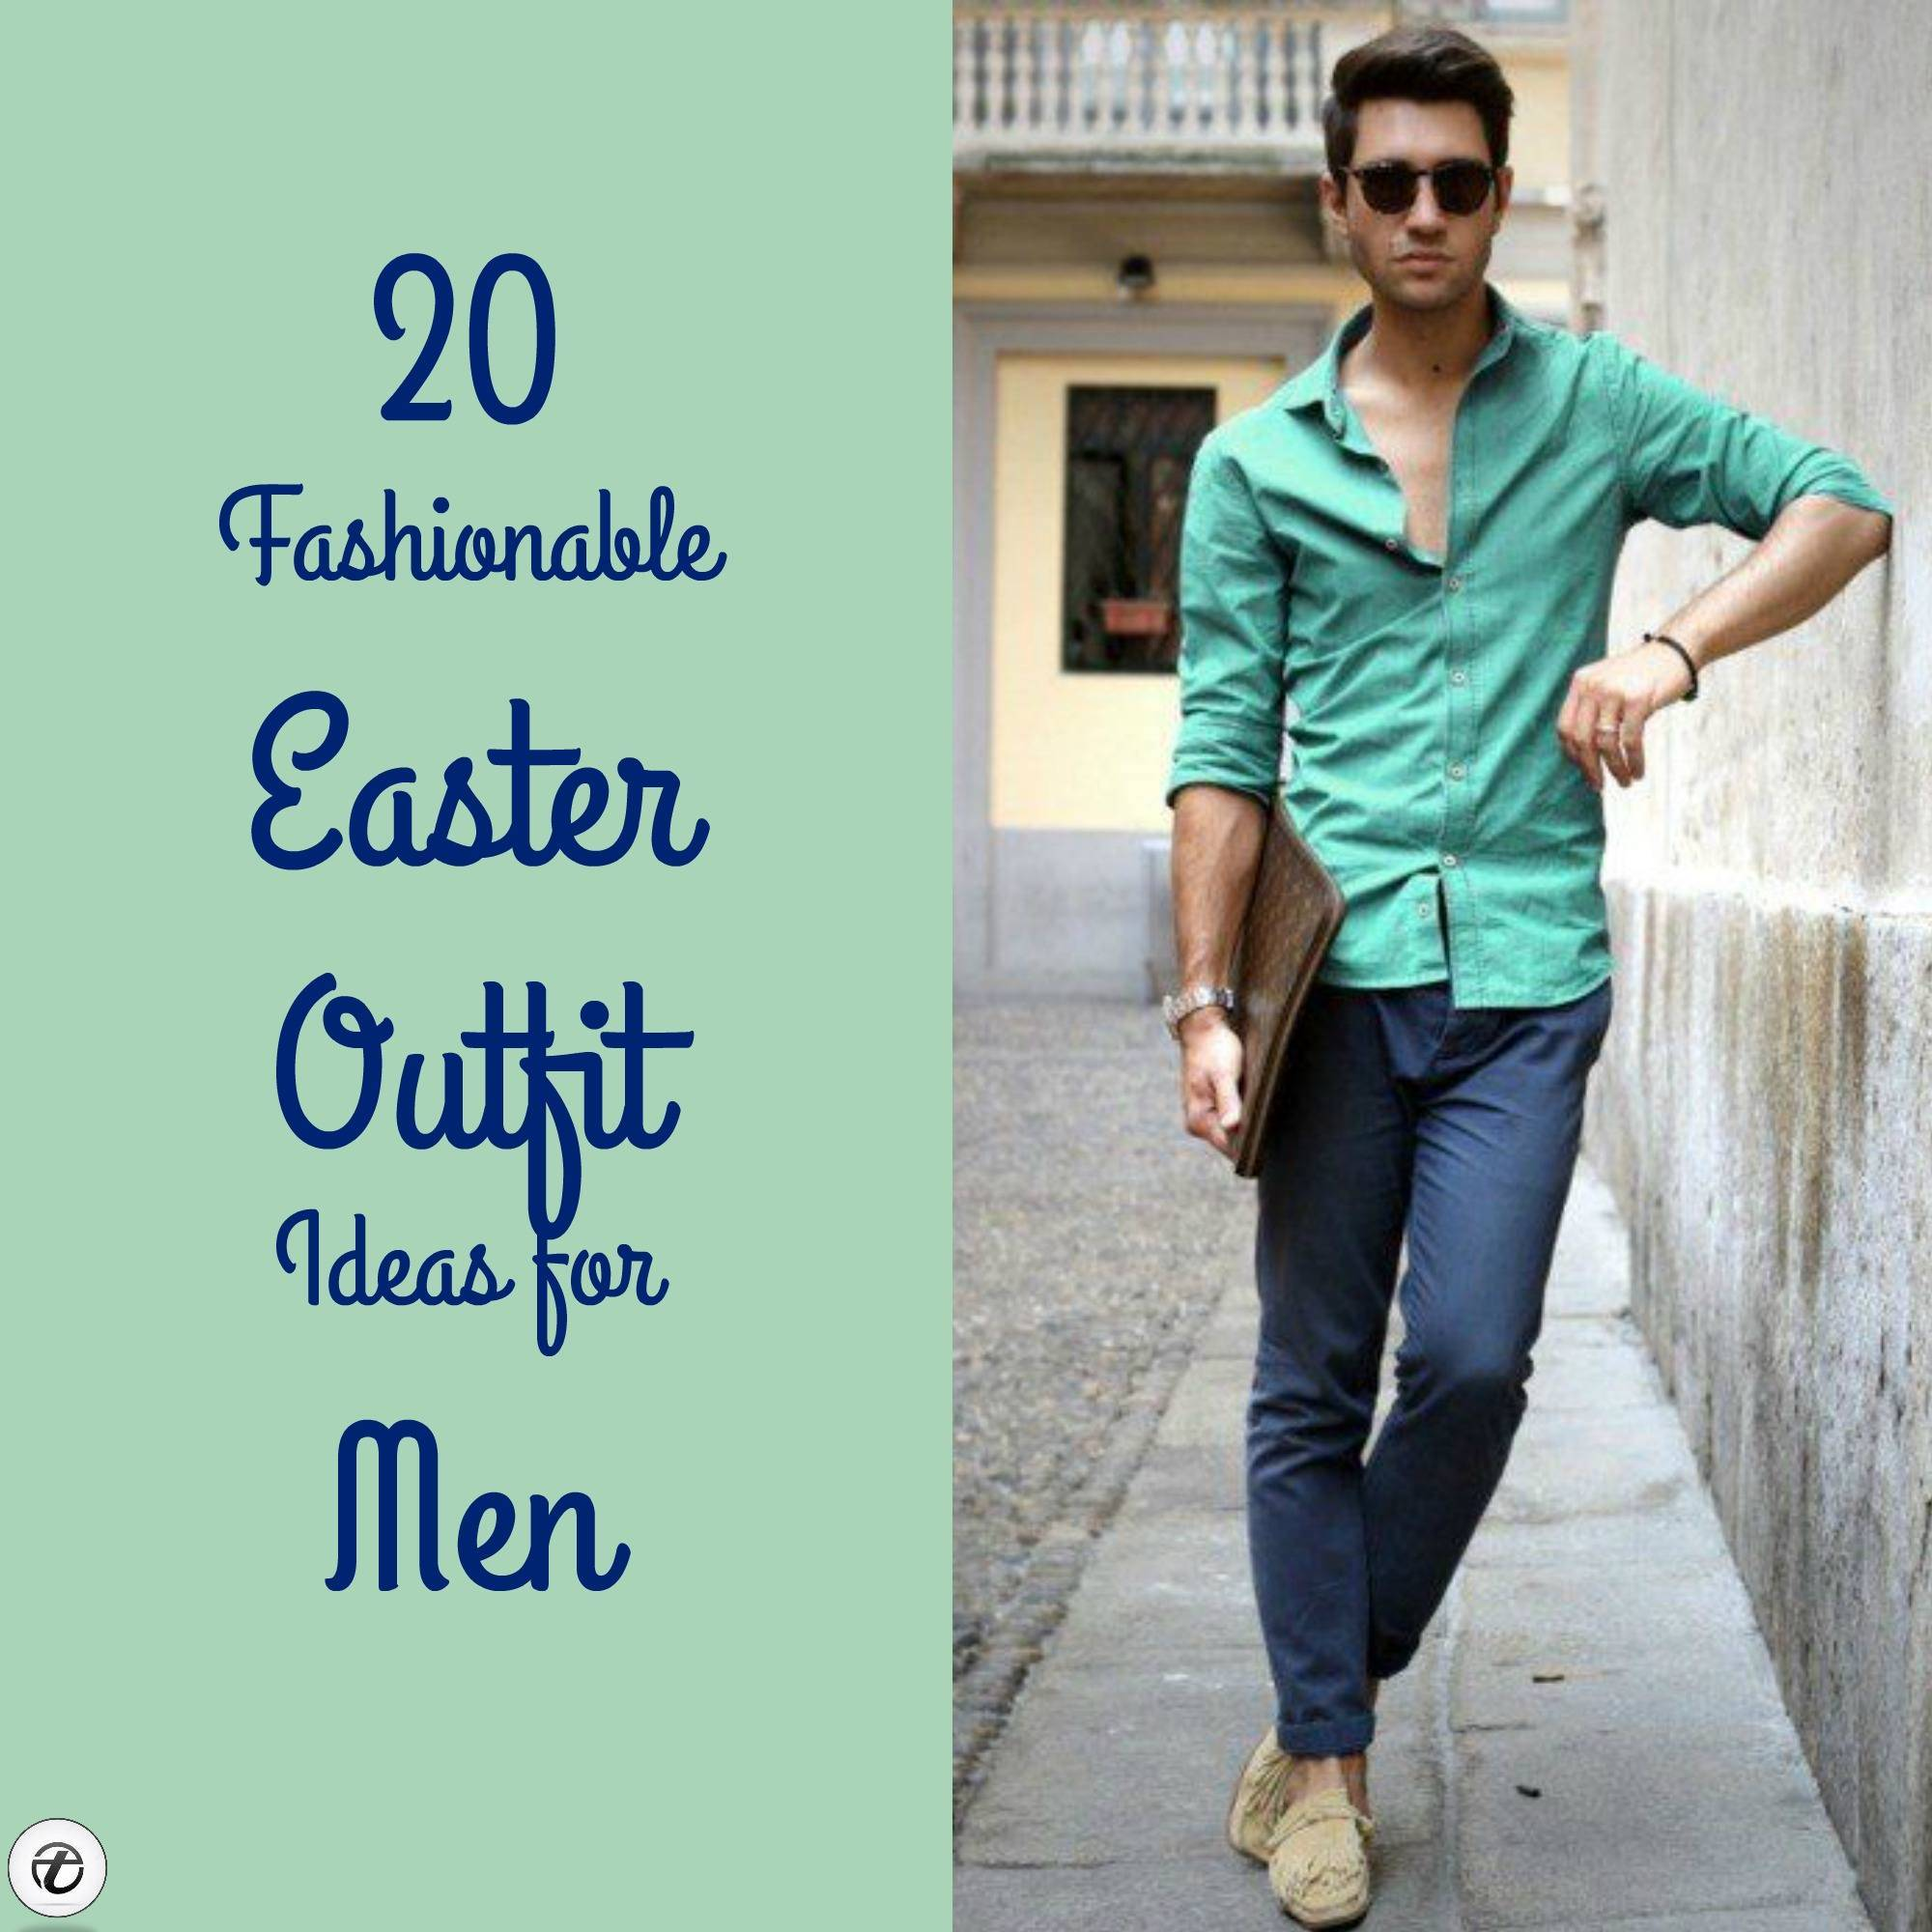 20 Fashionable Easter Outfit Ideas for Men 2019